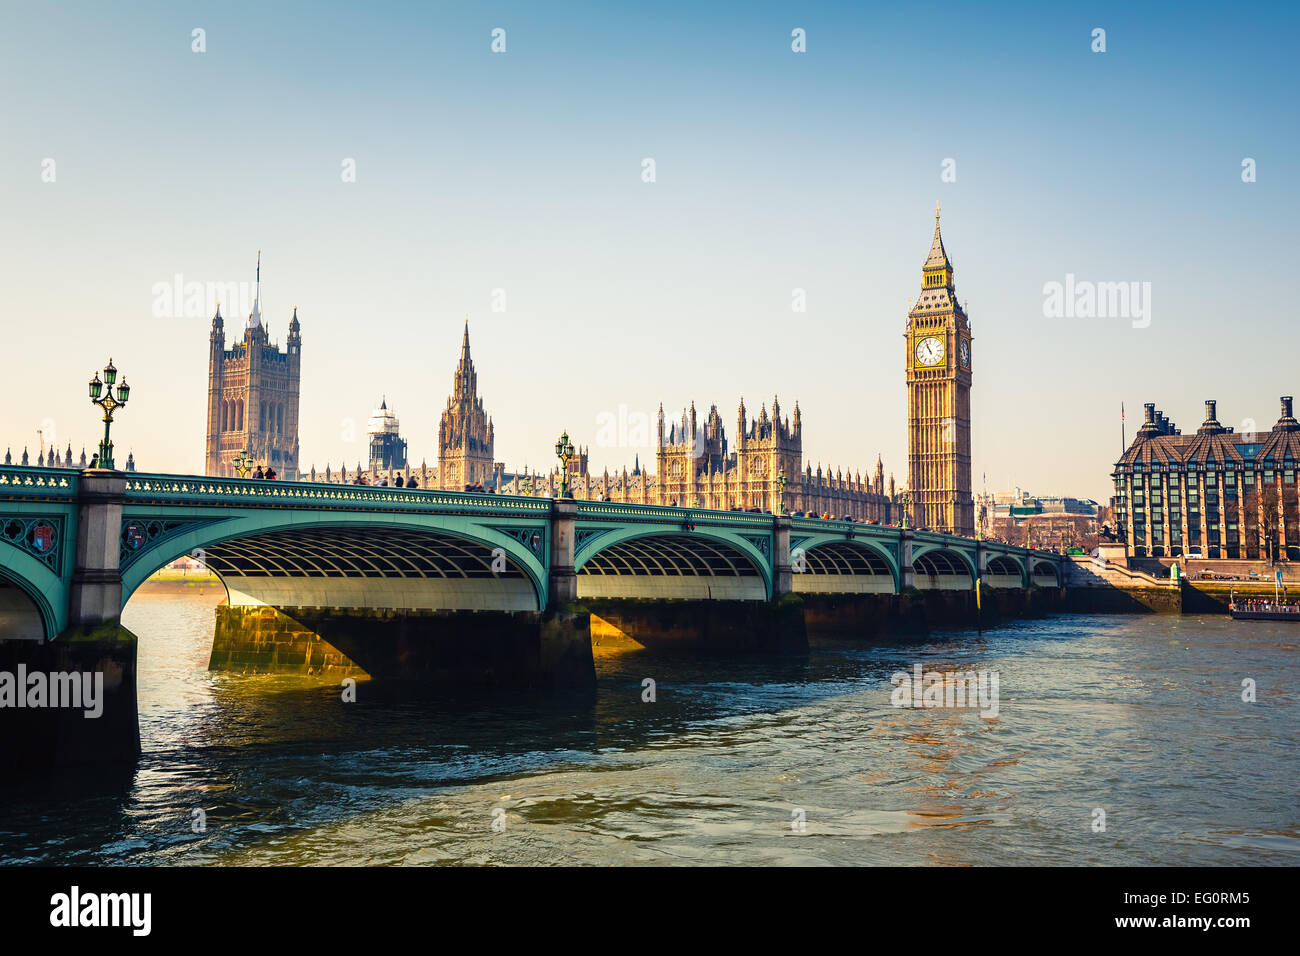 Big Ben and Houses of parliament, London - Stock Image